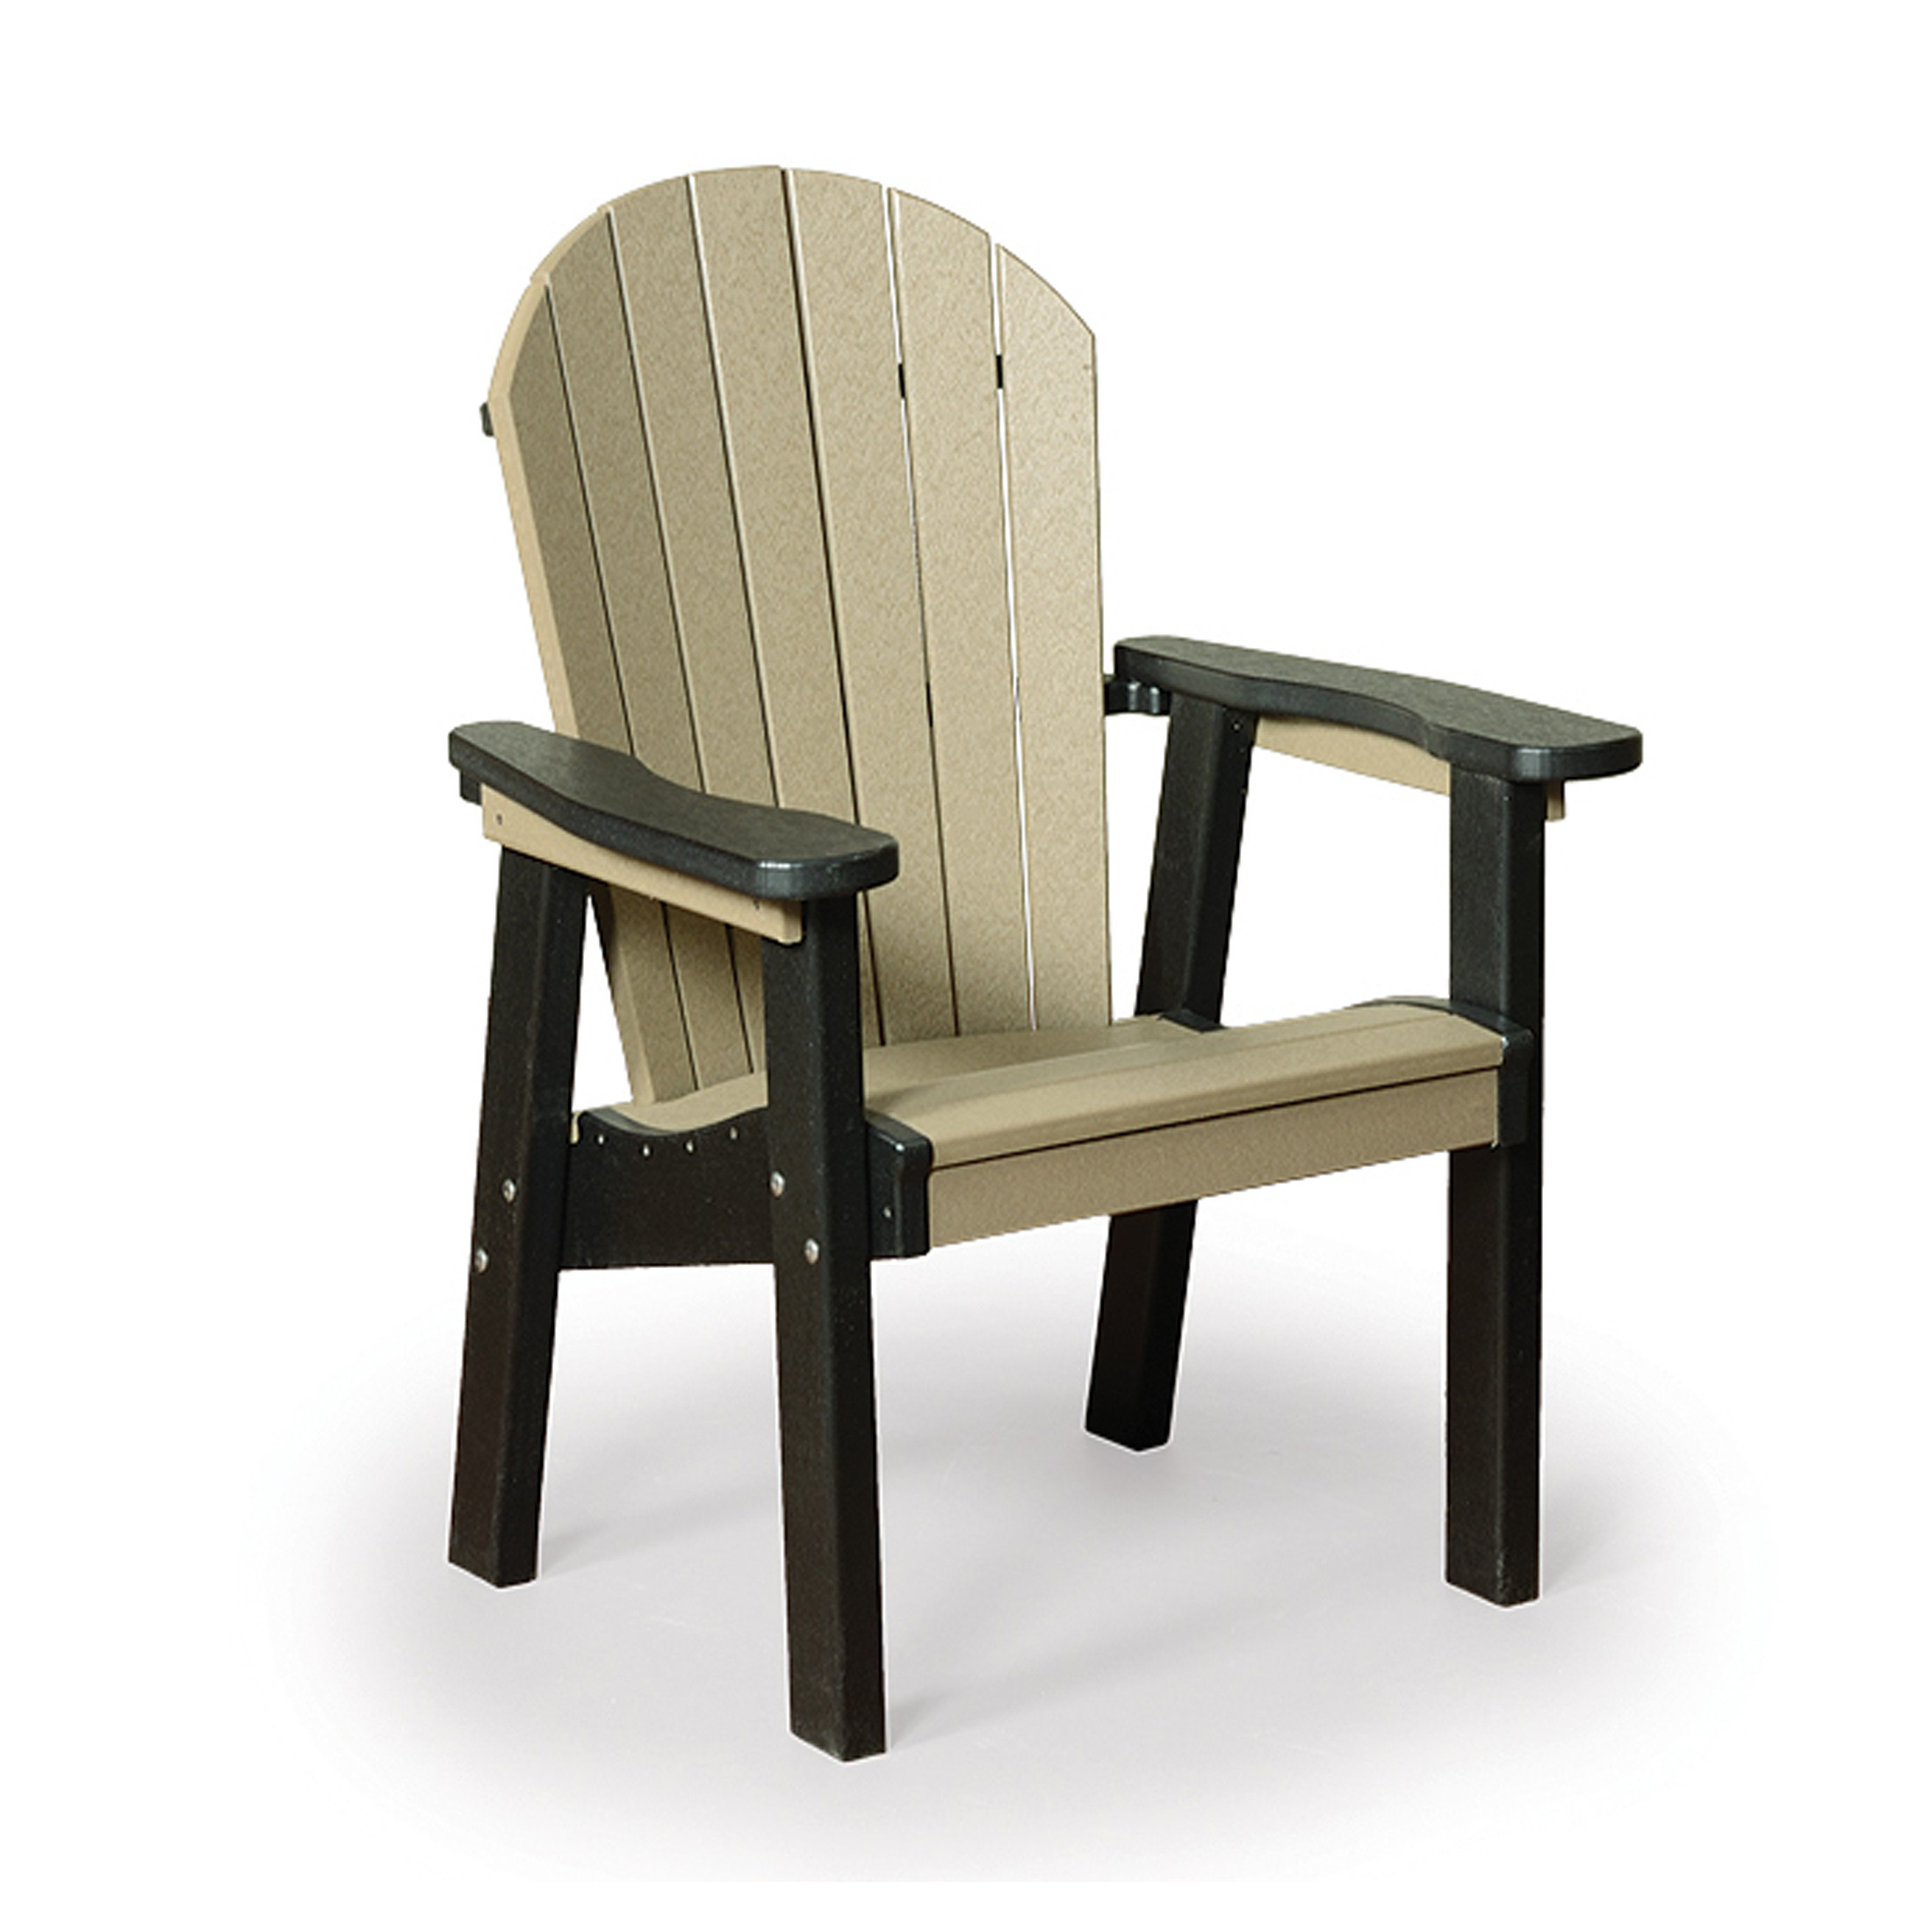 New Amish Polywood Outdoor Furniture